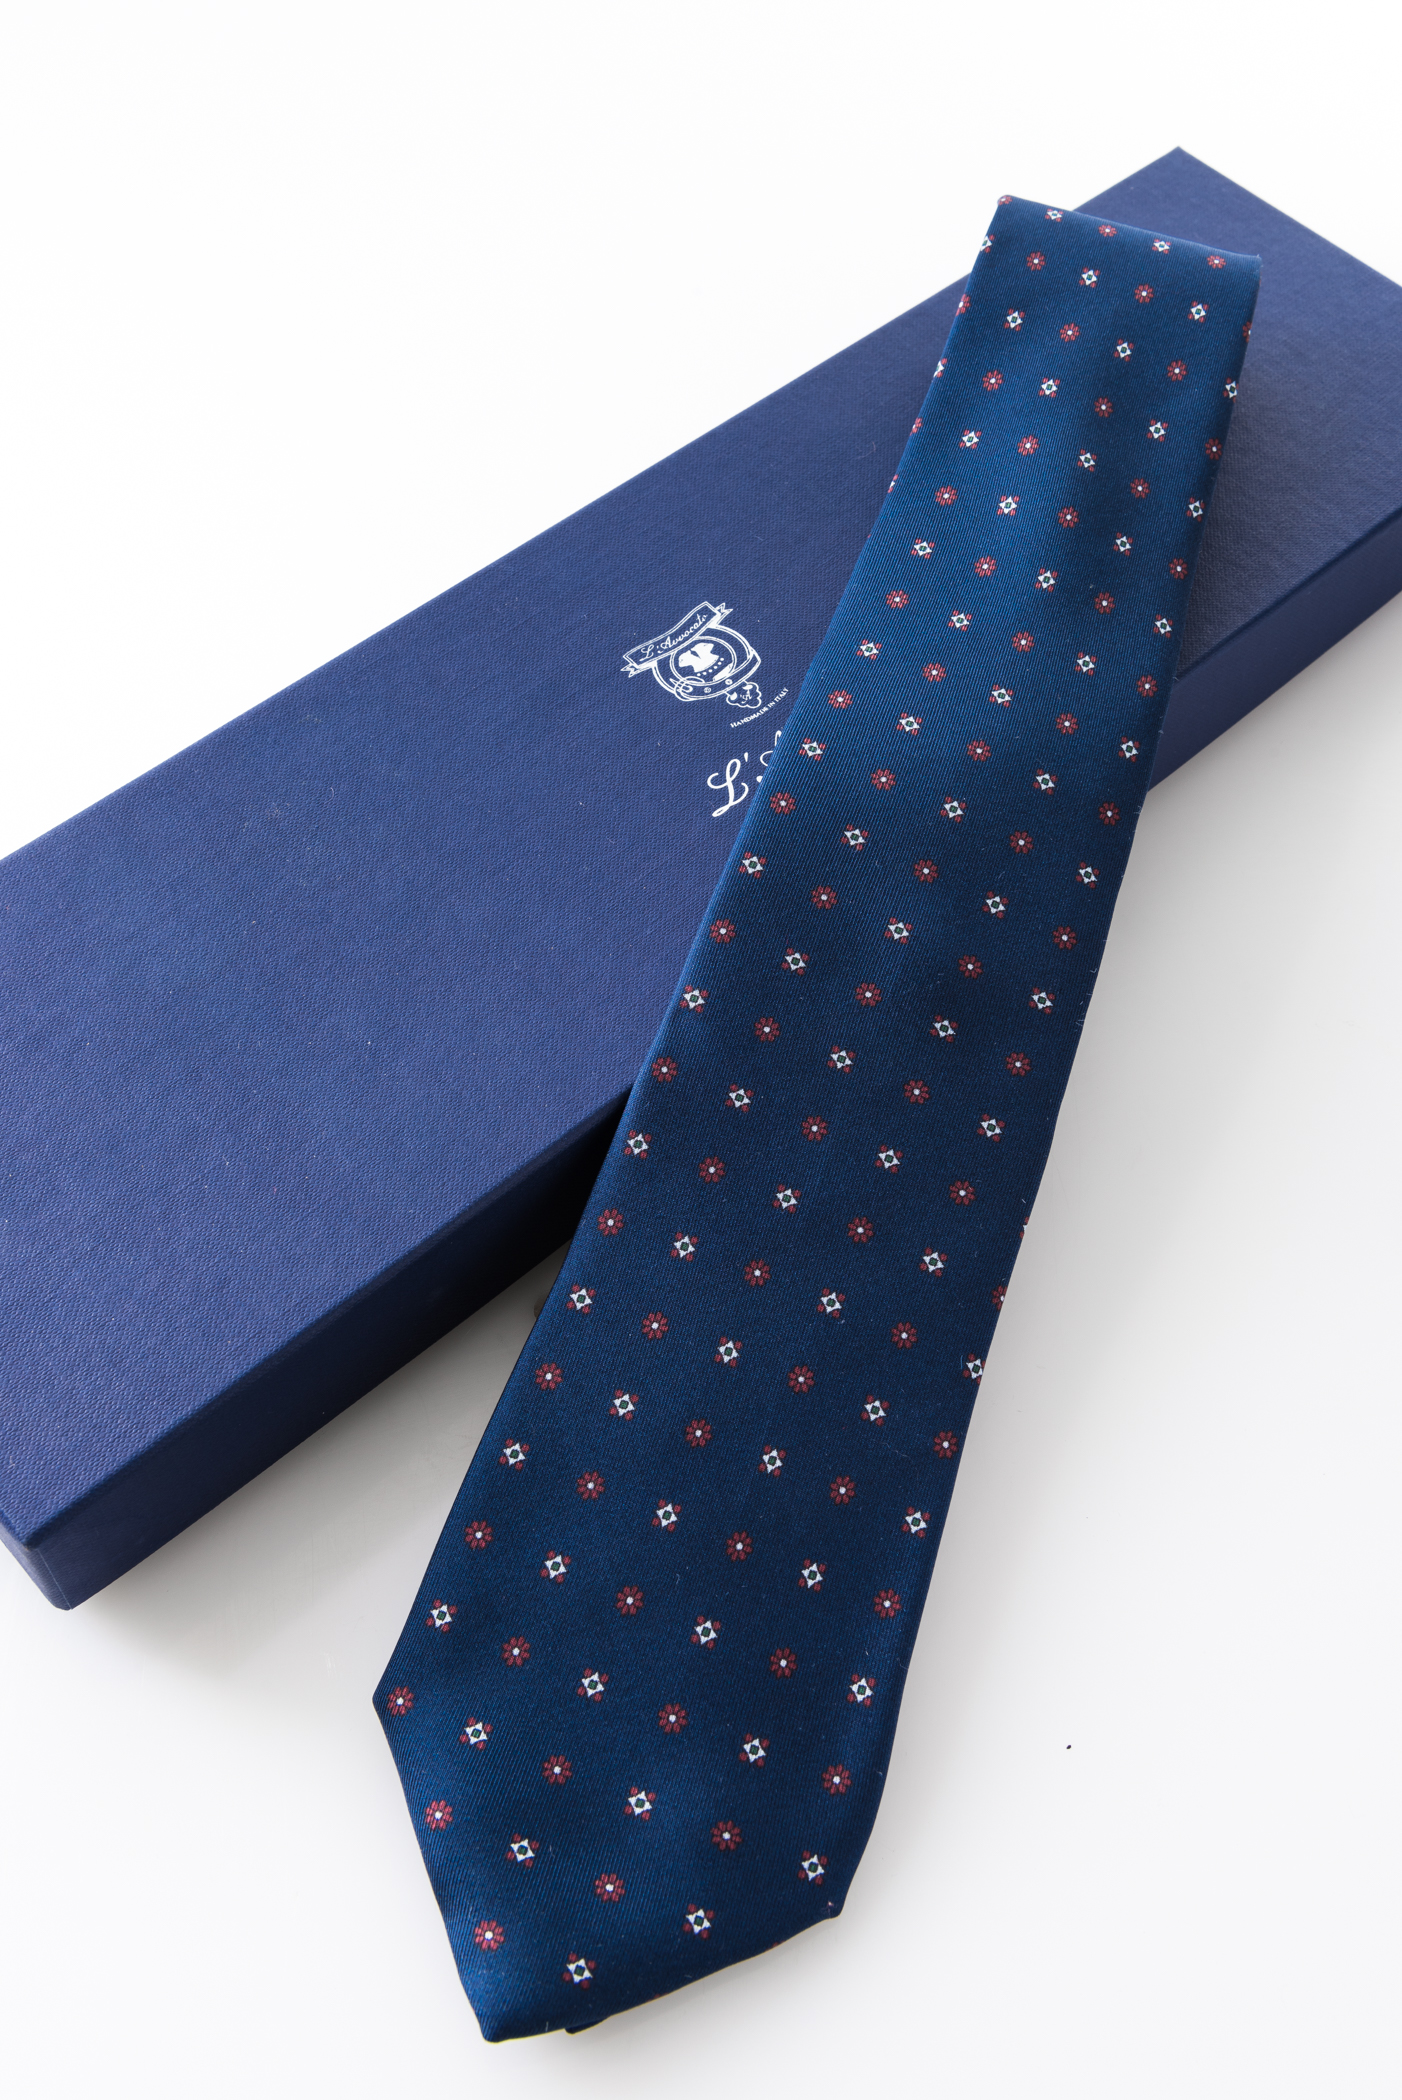 Seven-fold Tie – Susanna Blu – and its packaging